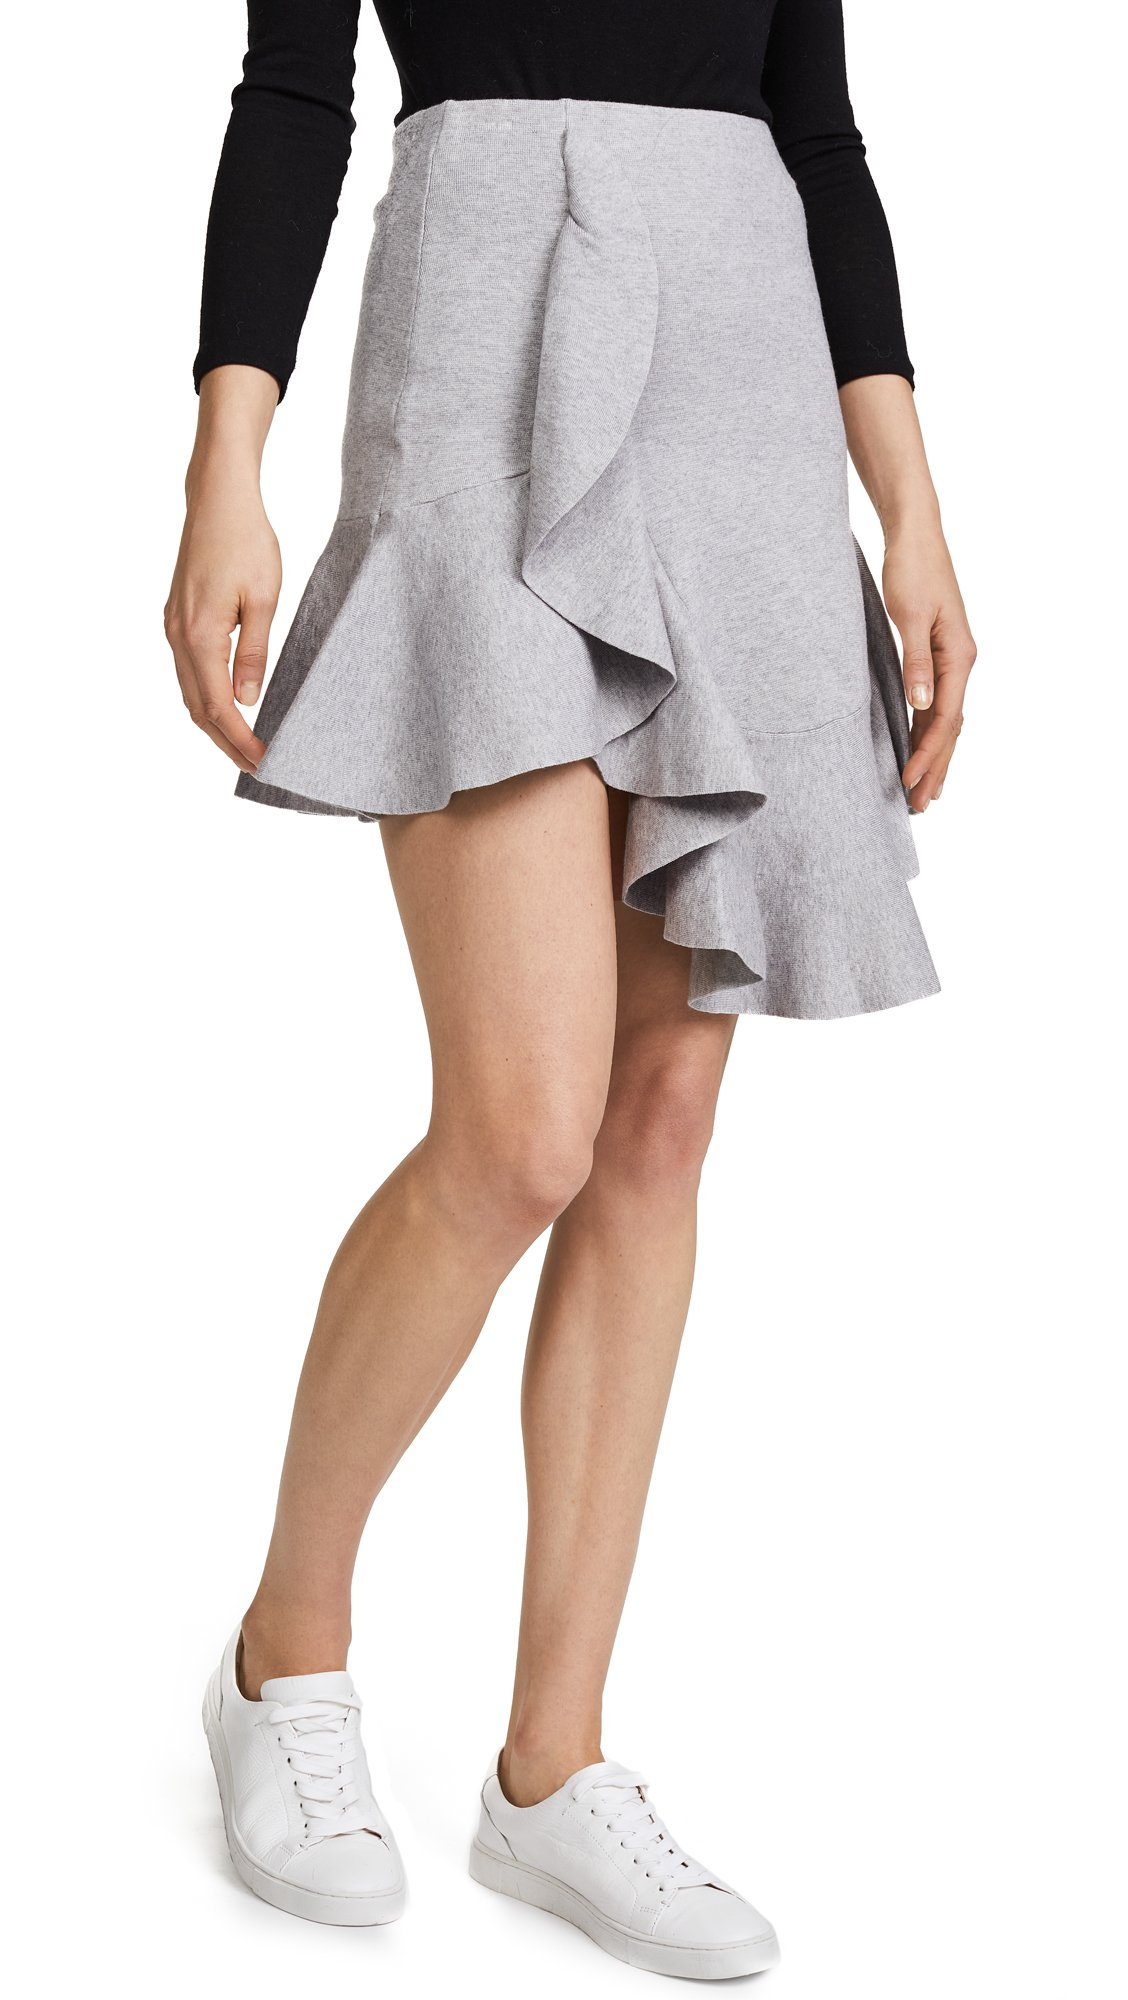 C/Meo Collective Women's Phase Knit Skirt, Grey, X-Small by C/Meo Collective